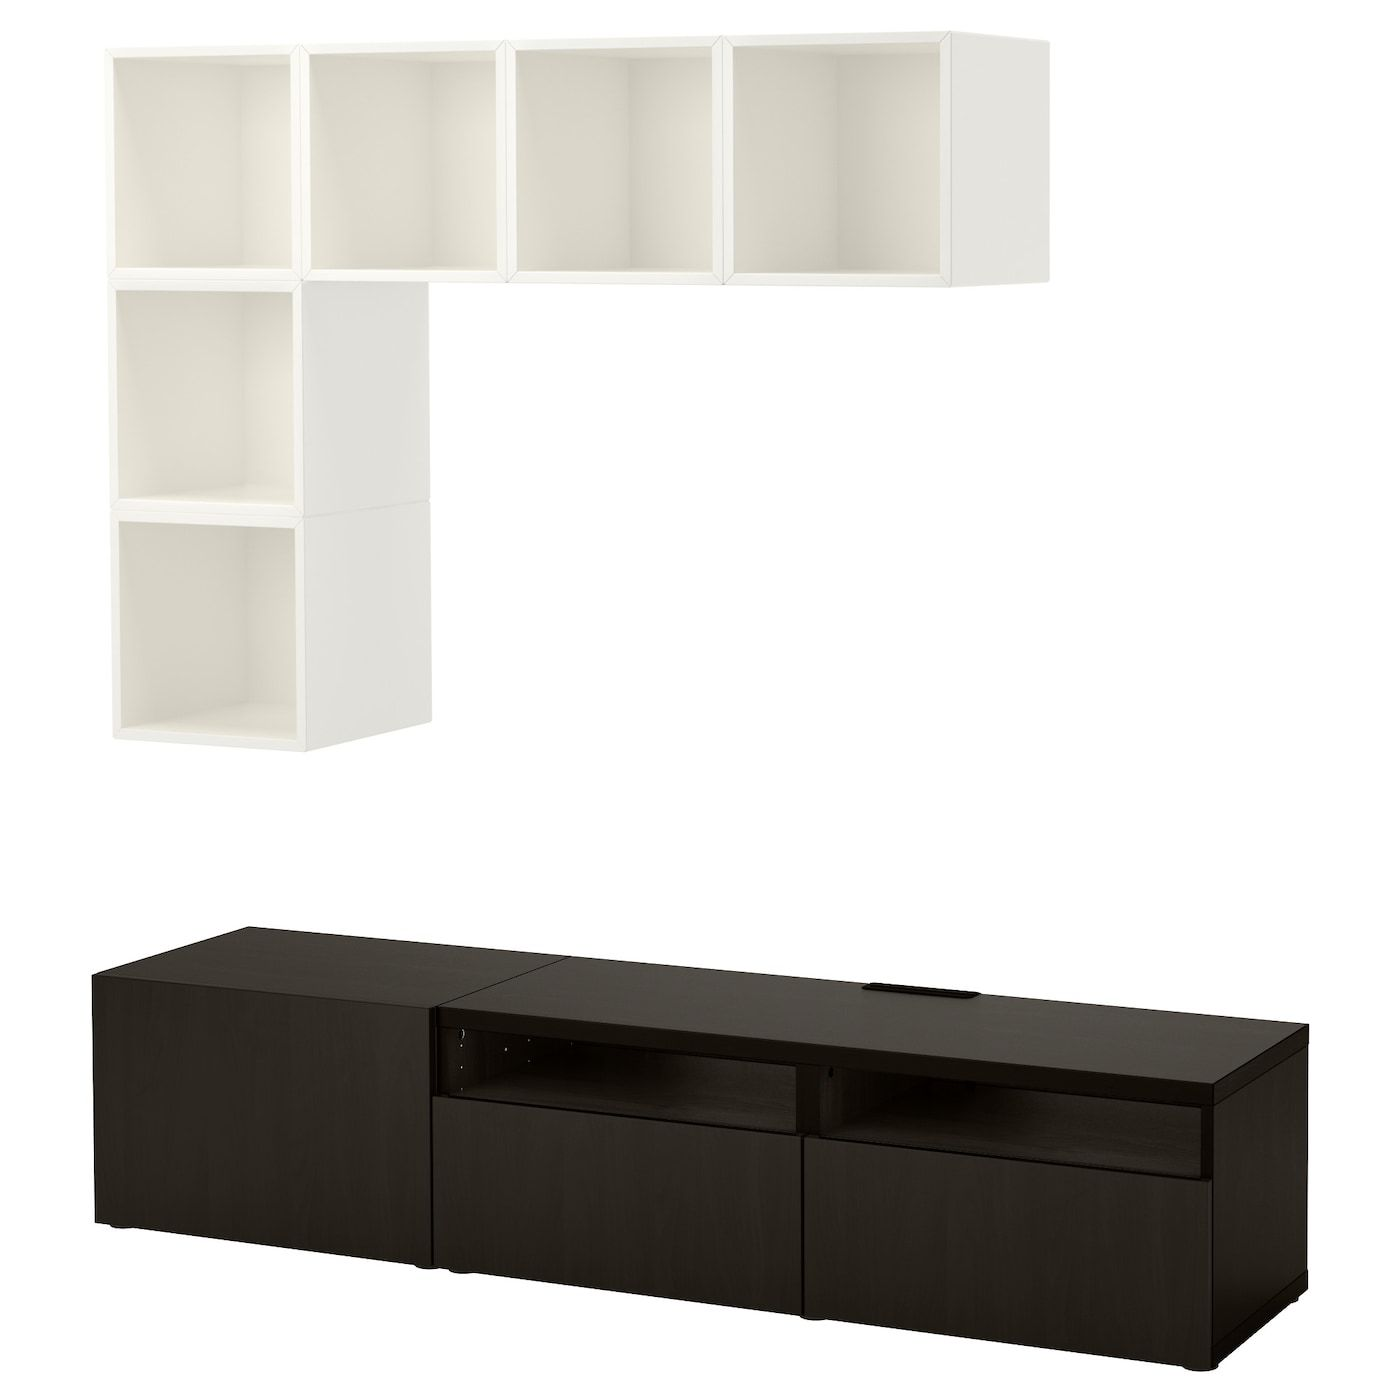 Tv Kast 70 Cm.Besta Eket Cabinet Combination For Tv White Black Brown